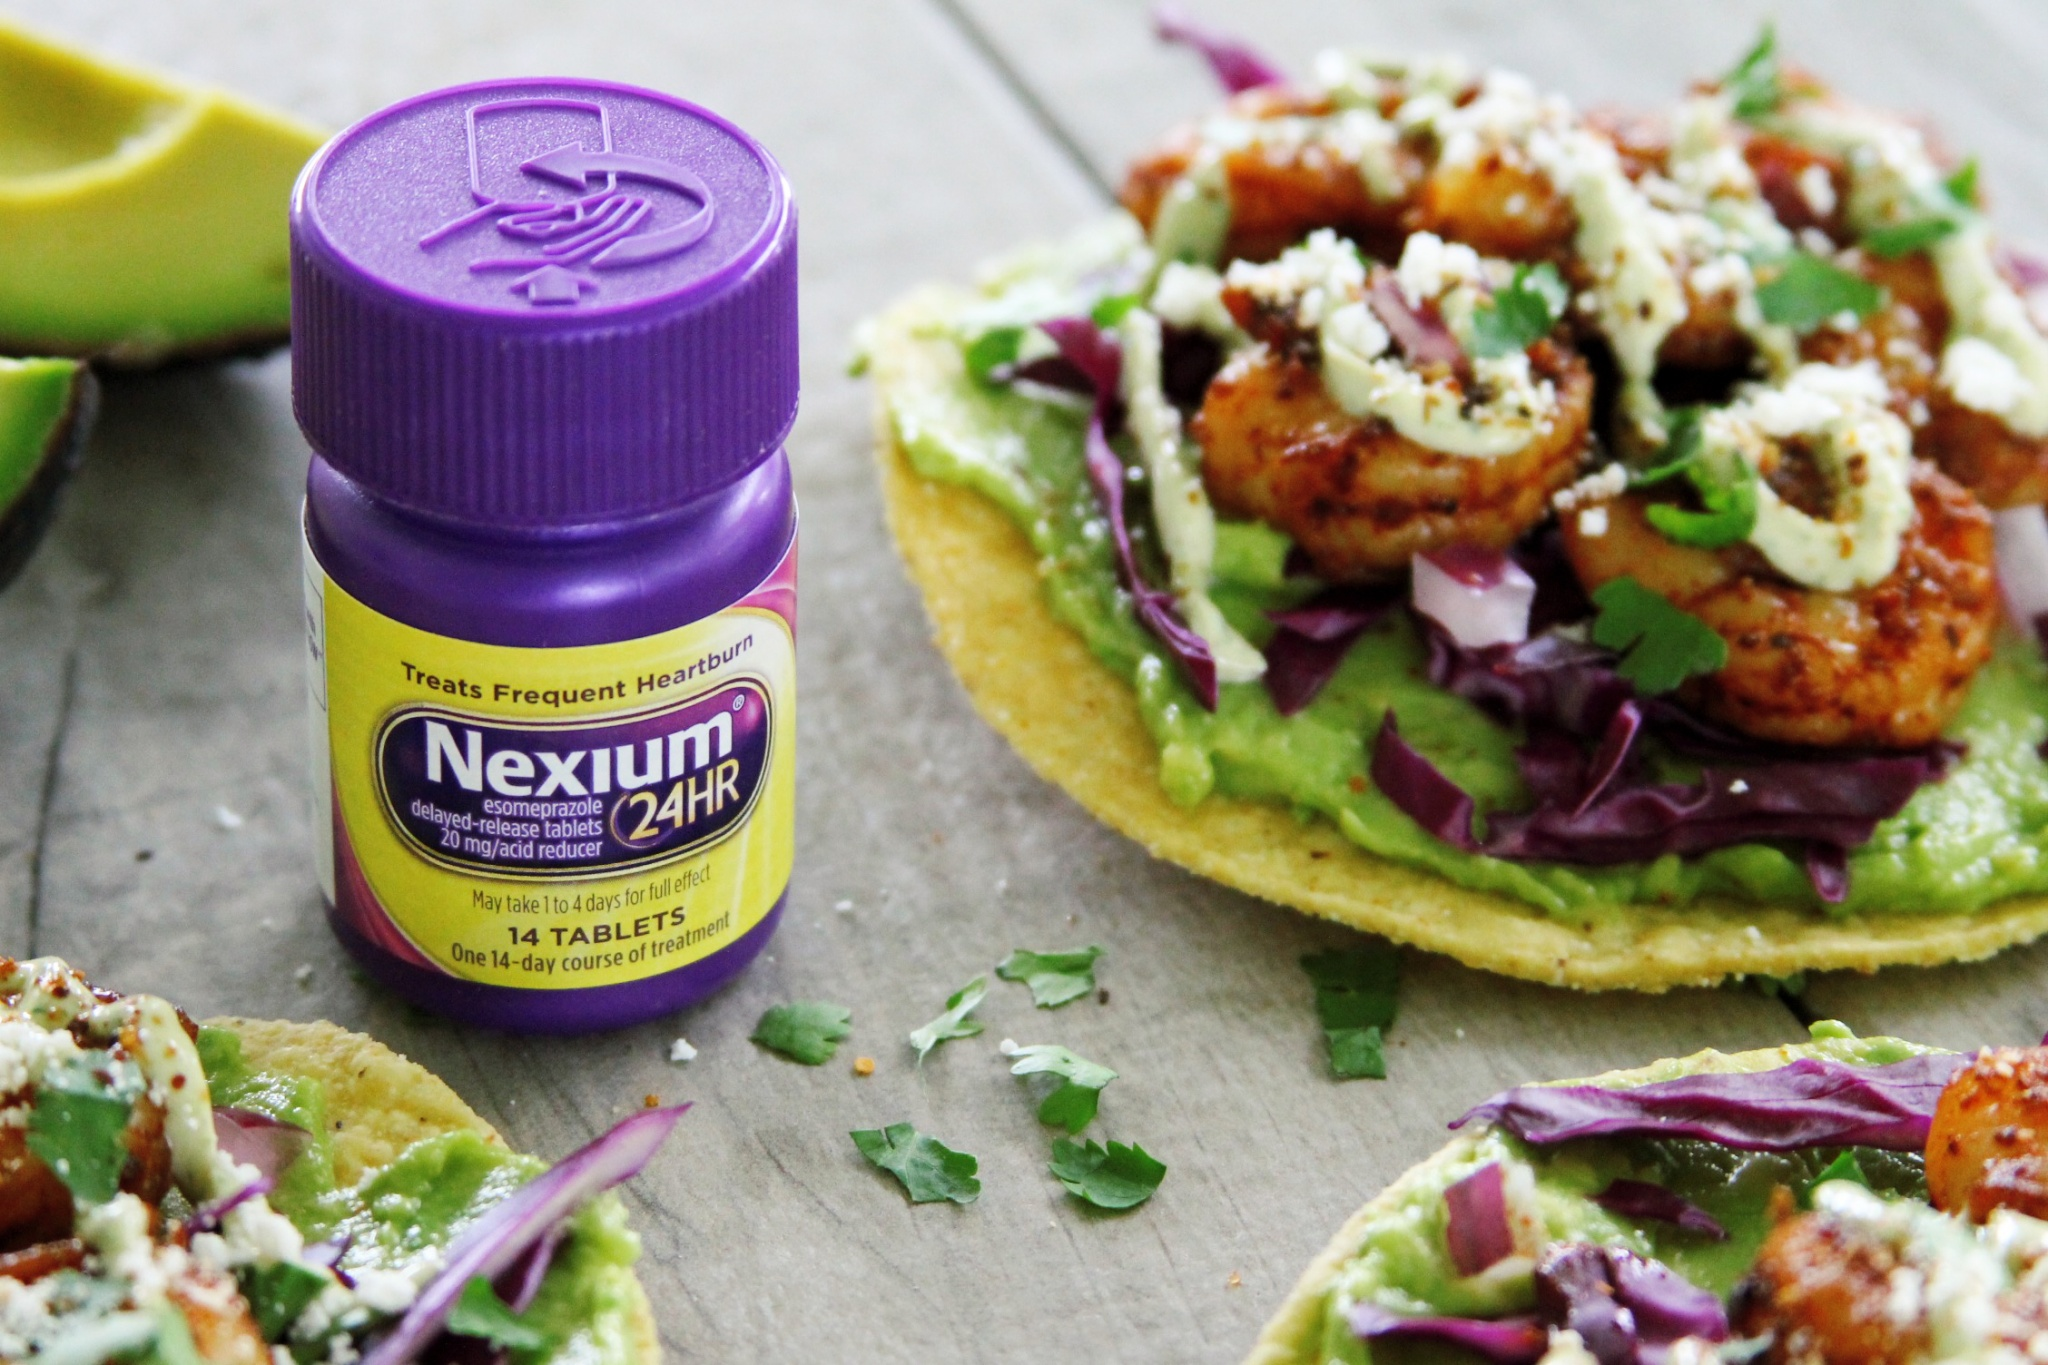 Nexium is perfect for spicy food